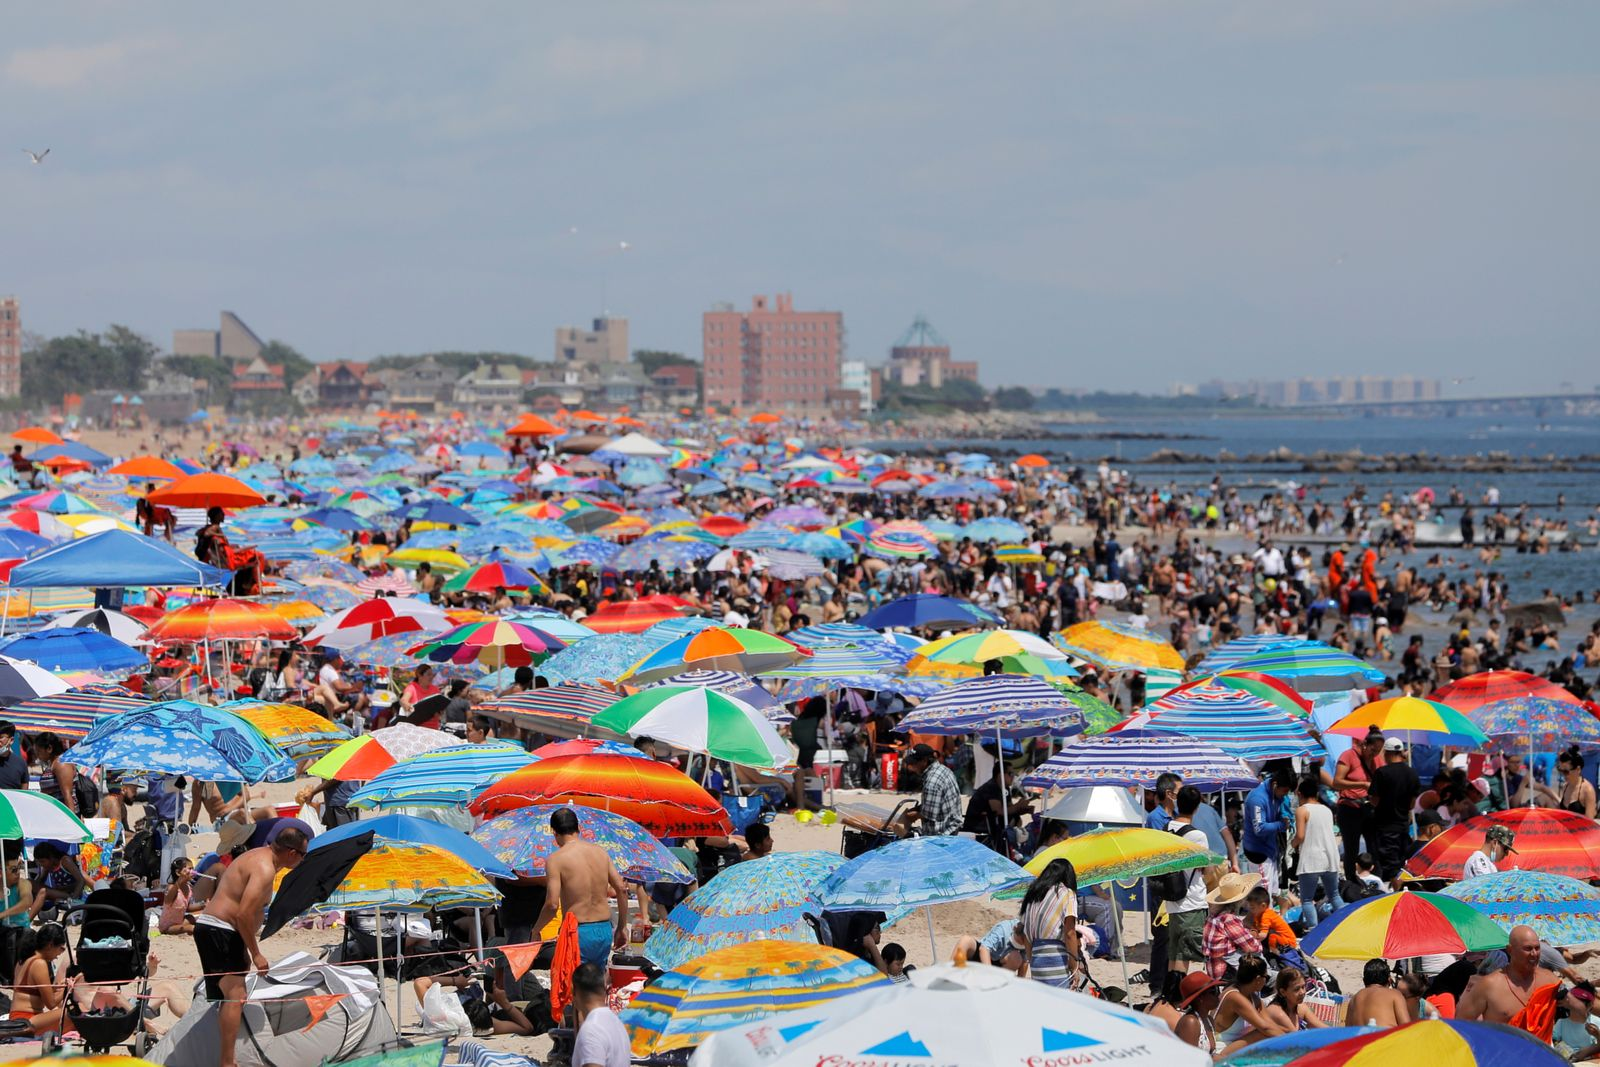 People gather on Coney Island beach on the Independence Day holiday in Brooklyn, New York City